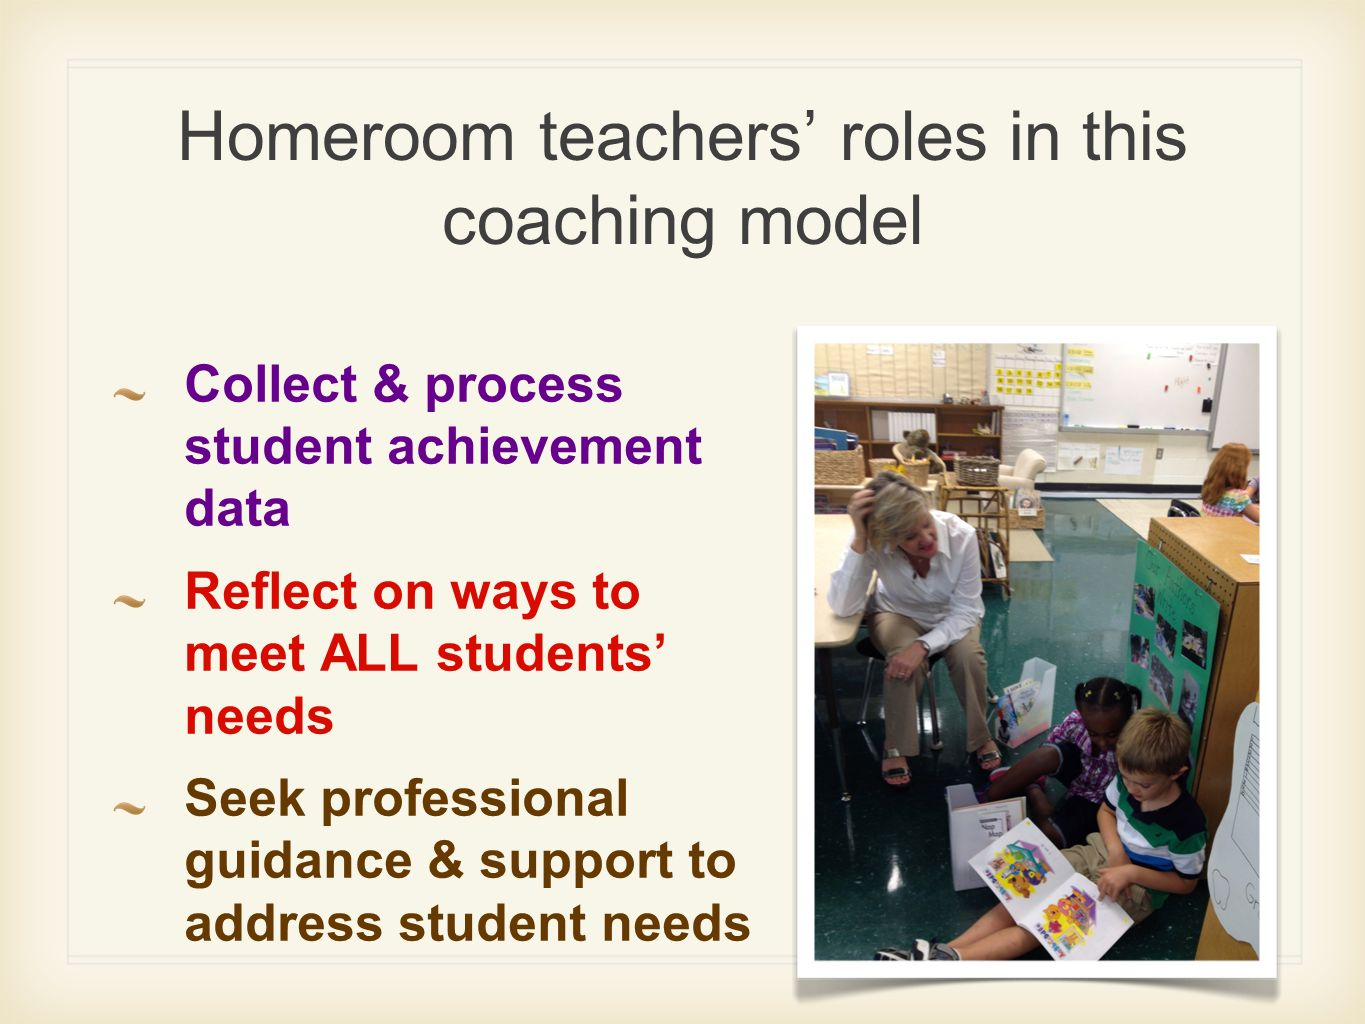 Homeroom teachers' roles in this coaching model